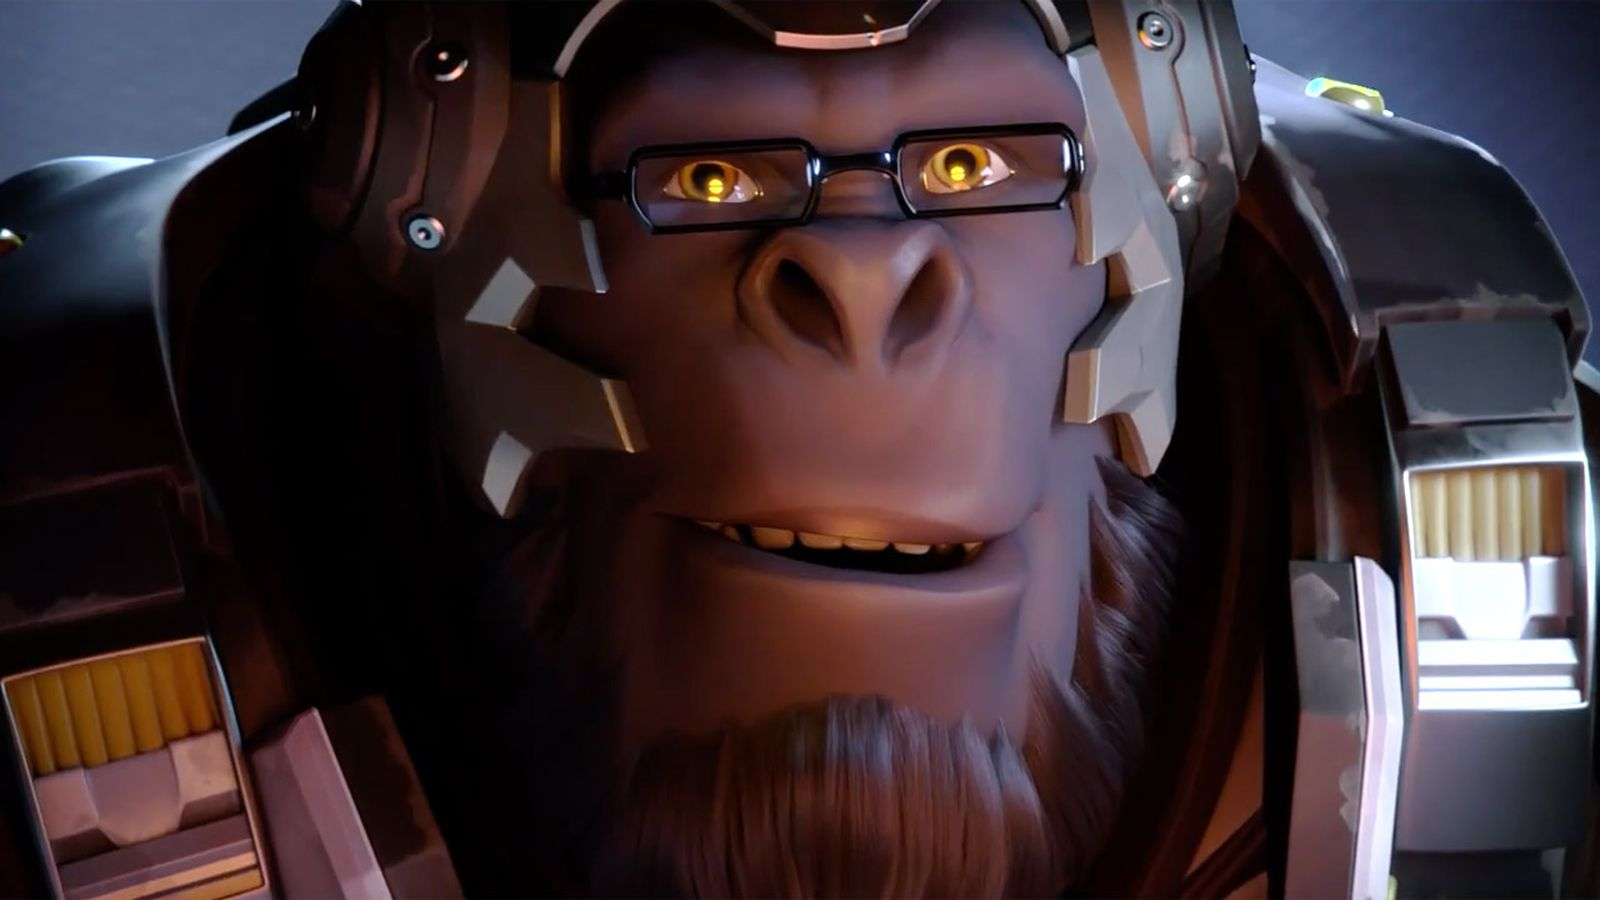 Linux Animated Wallpaper Blizzard S New Overwatch Short Might Be Teasing A Few New